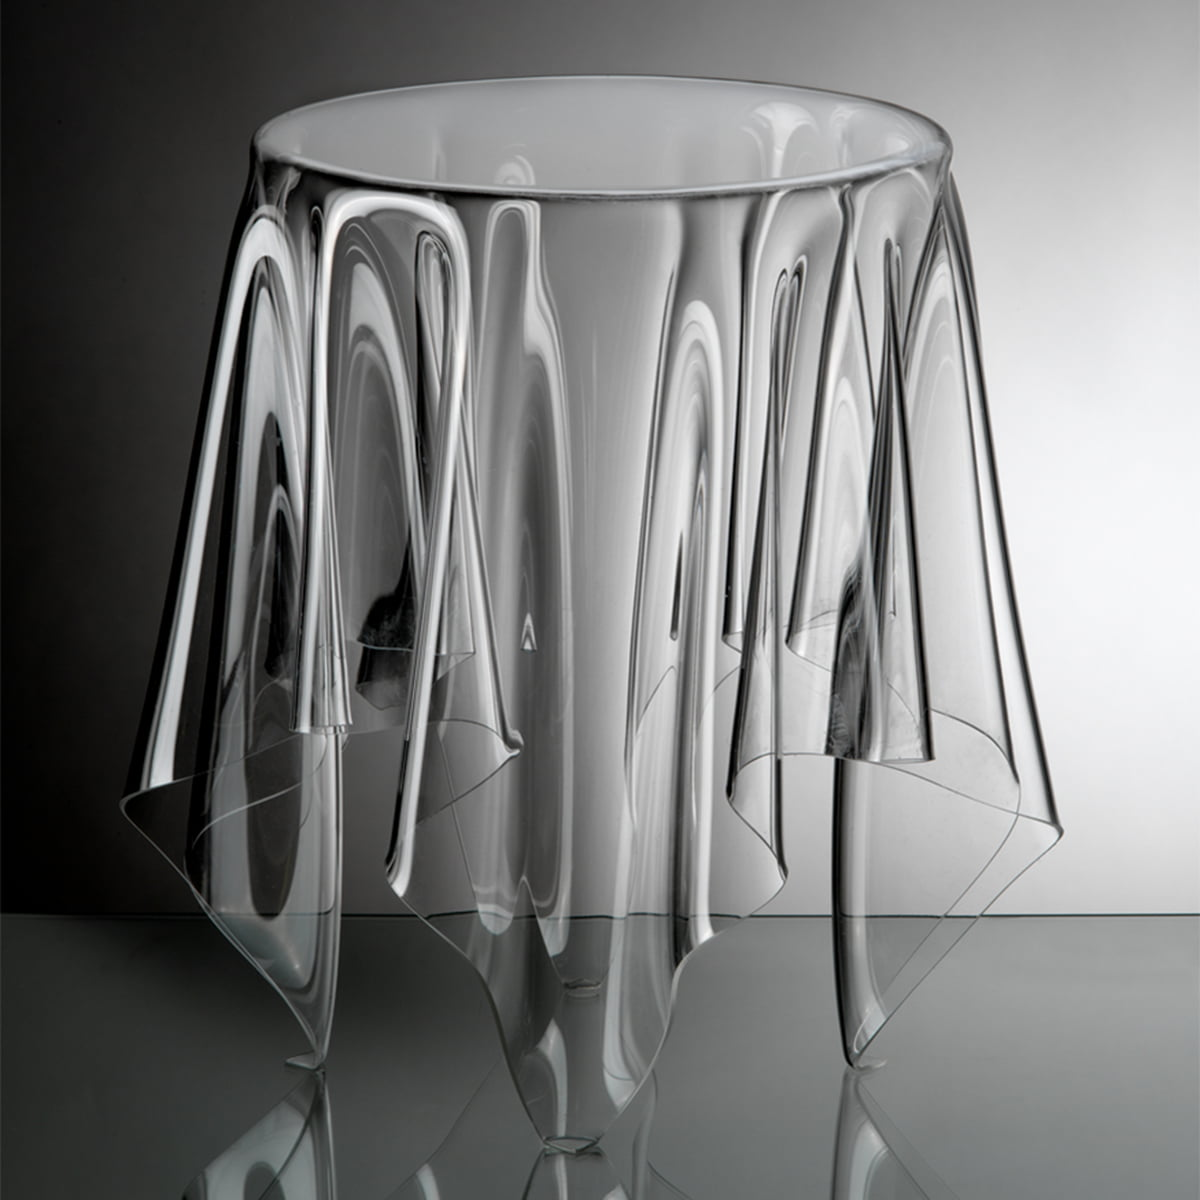 essay grand illusion table Buy illusion side table - clear - essey: furniture - amazoncom free delivery possible on eligible purchases.